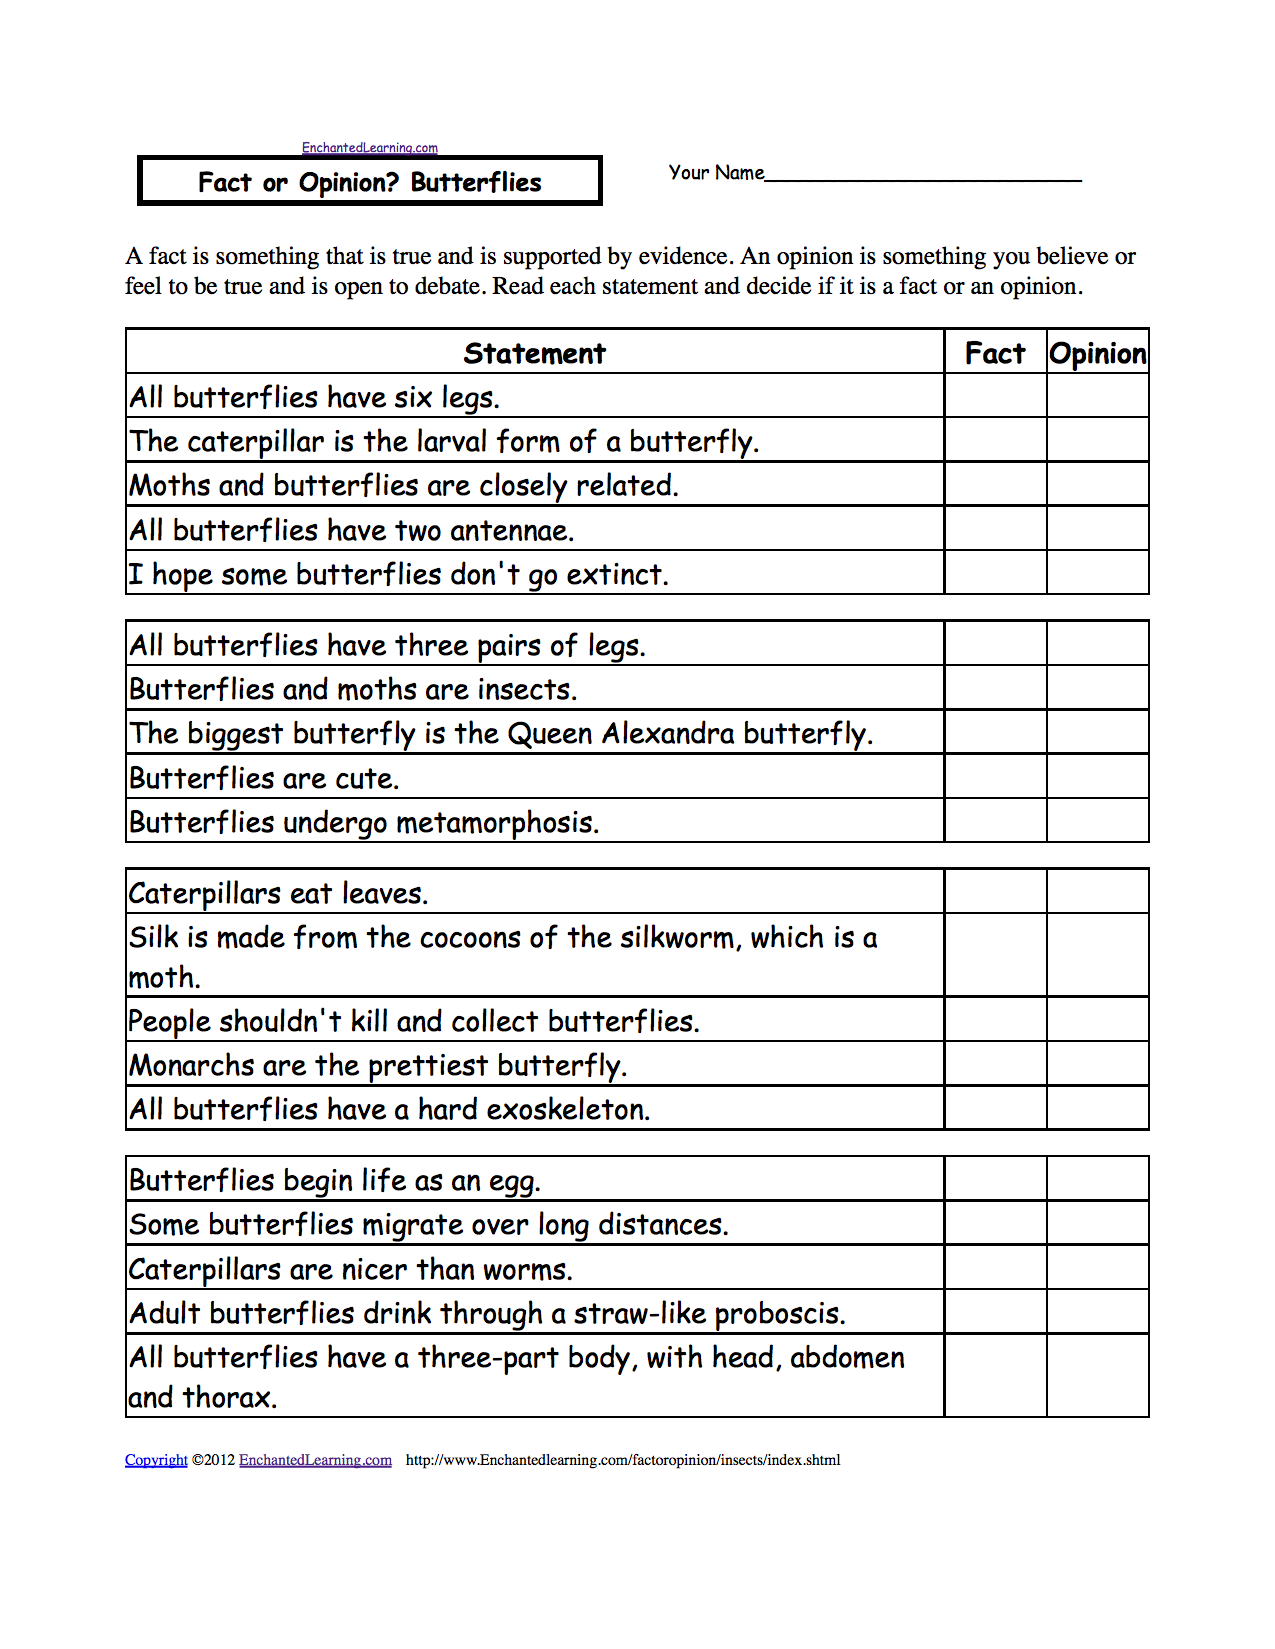 worksheet Facts And Opinions Worksheet fact or opinion checkmark worksheets to print enchantedlearning com